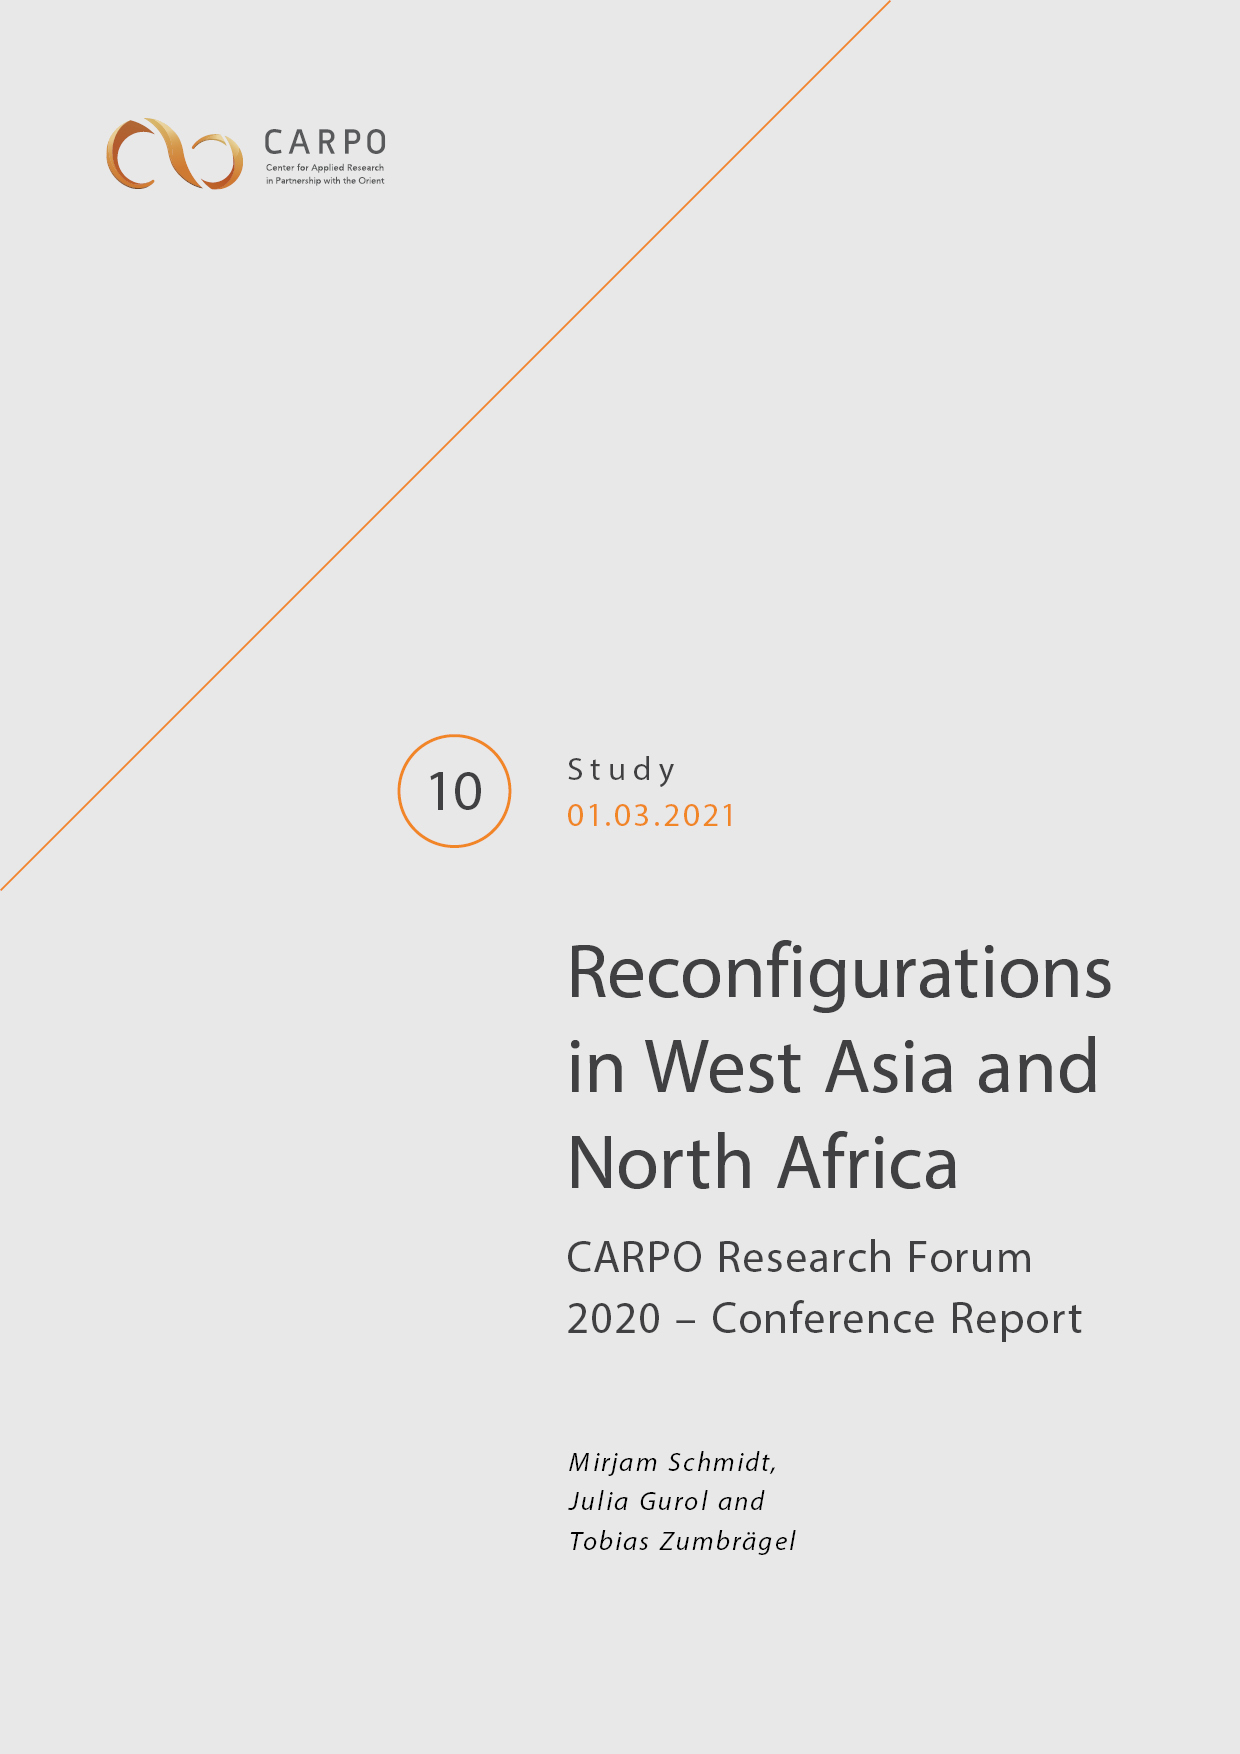 Reconfigurations in West Asia and North Africa. CARPO Research Forum 2020 – Conference Report